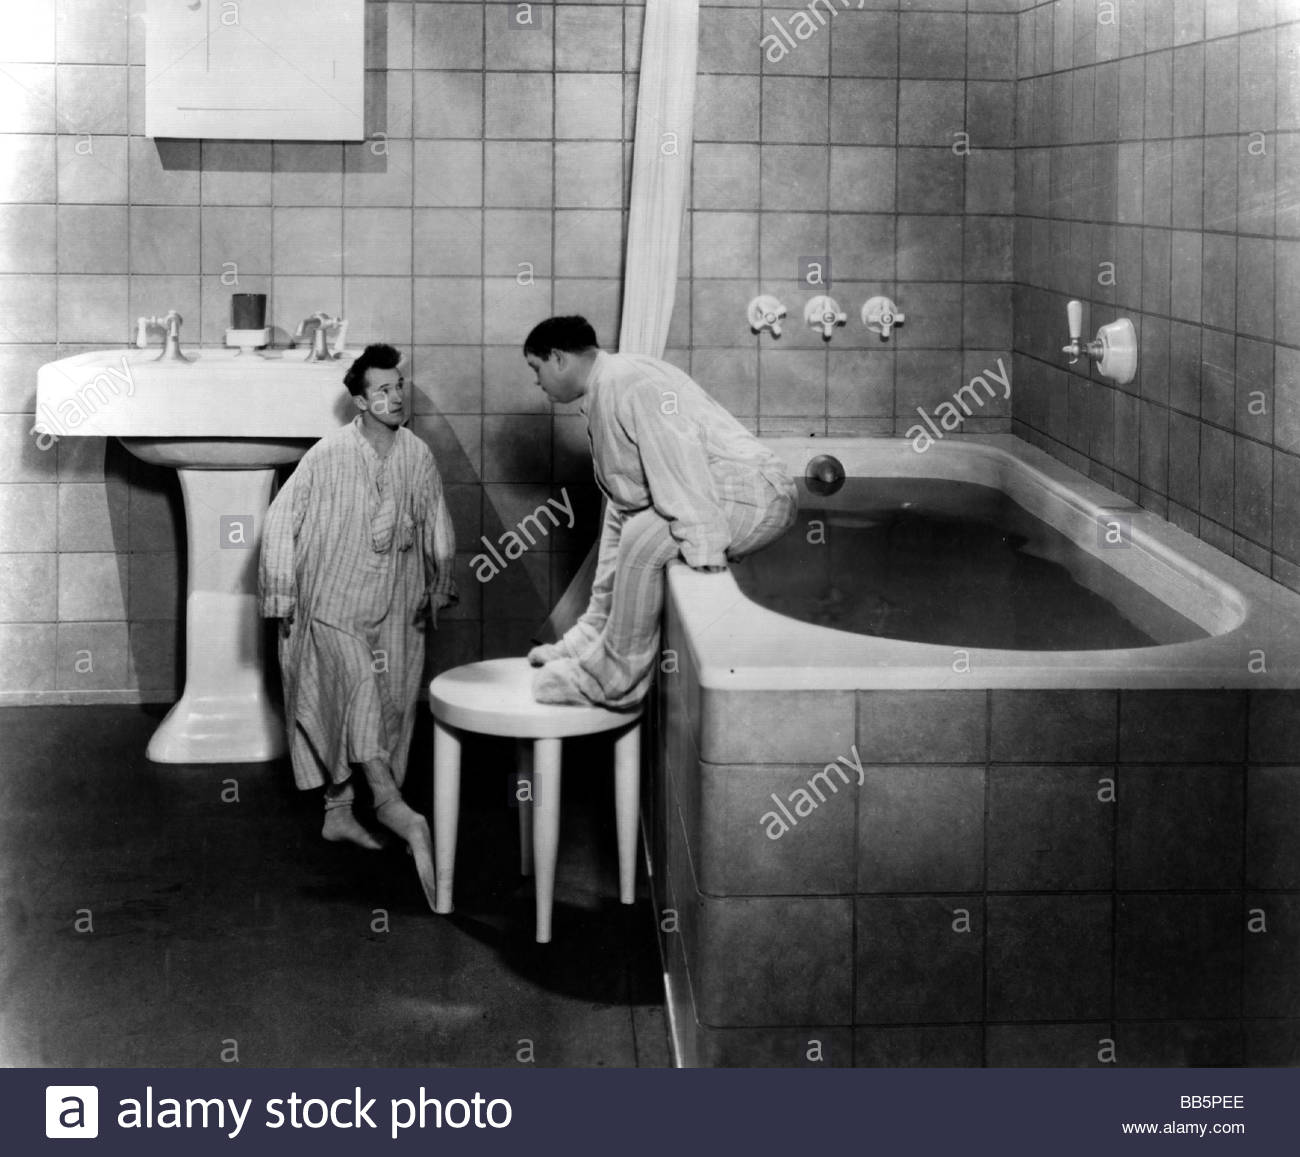 1930s Bathroom Movie Brats Usa 1930s Director James Parrott Scene With